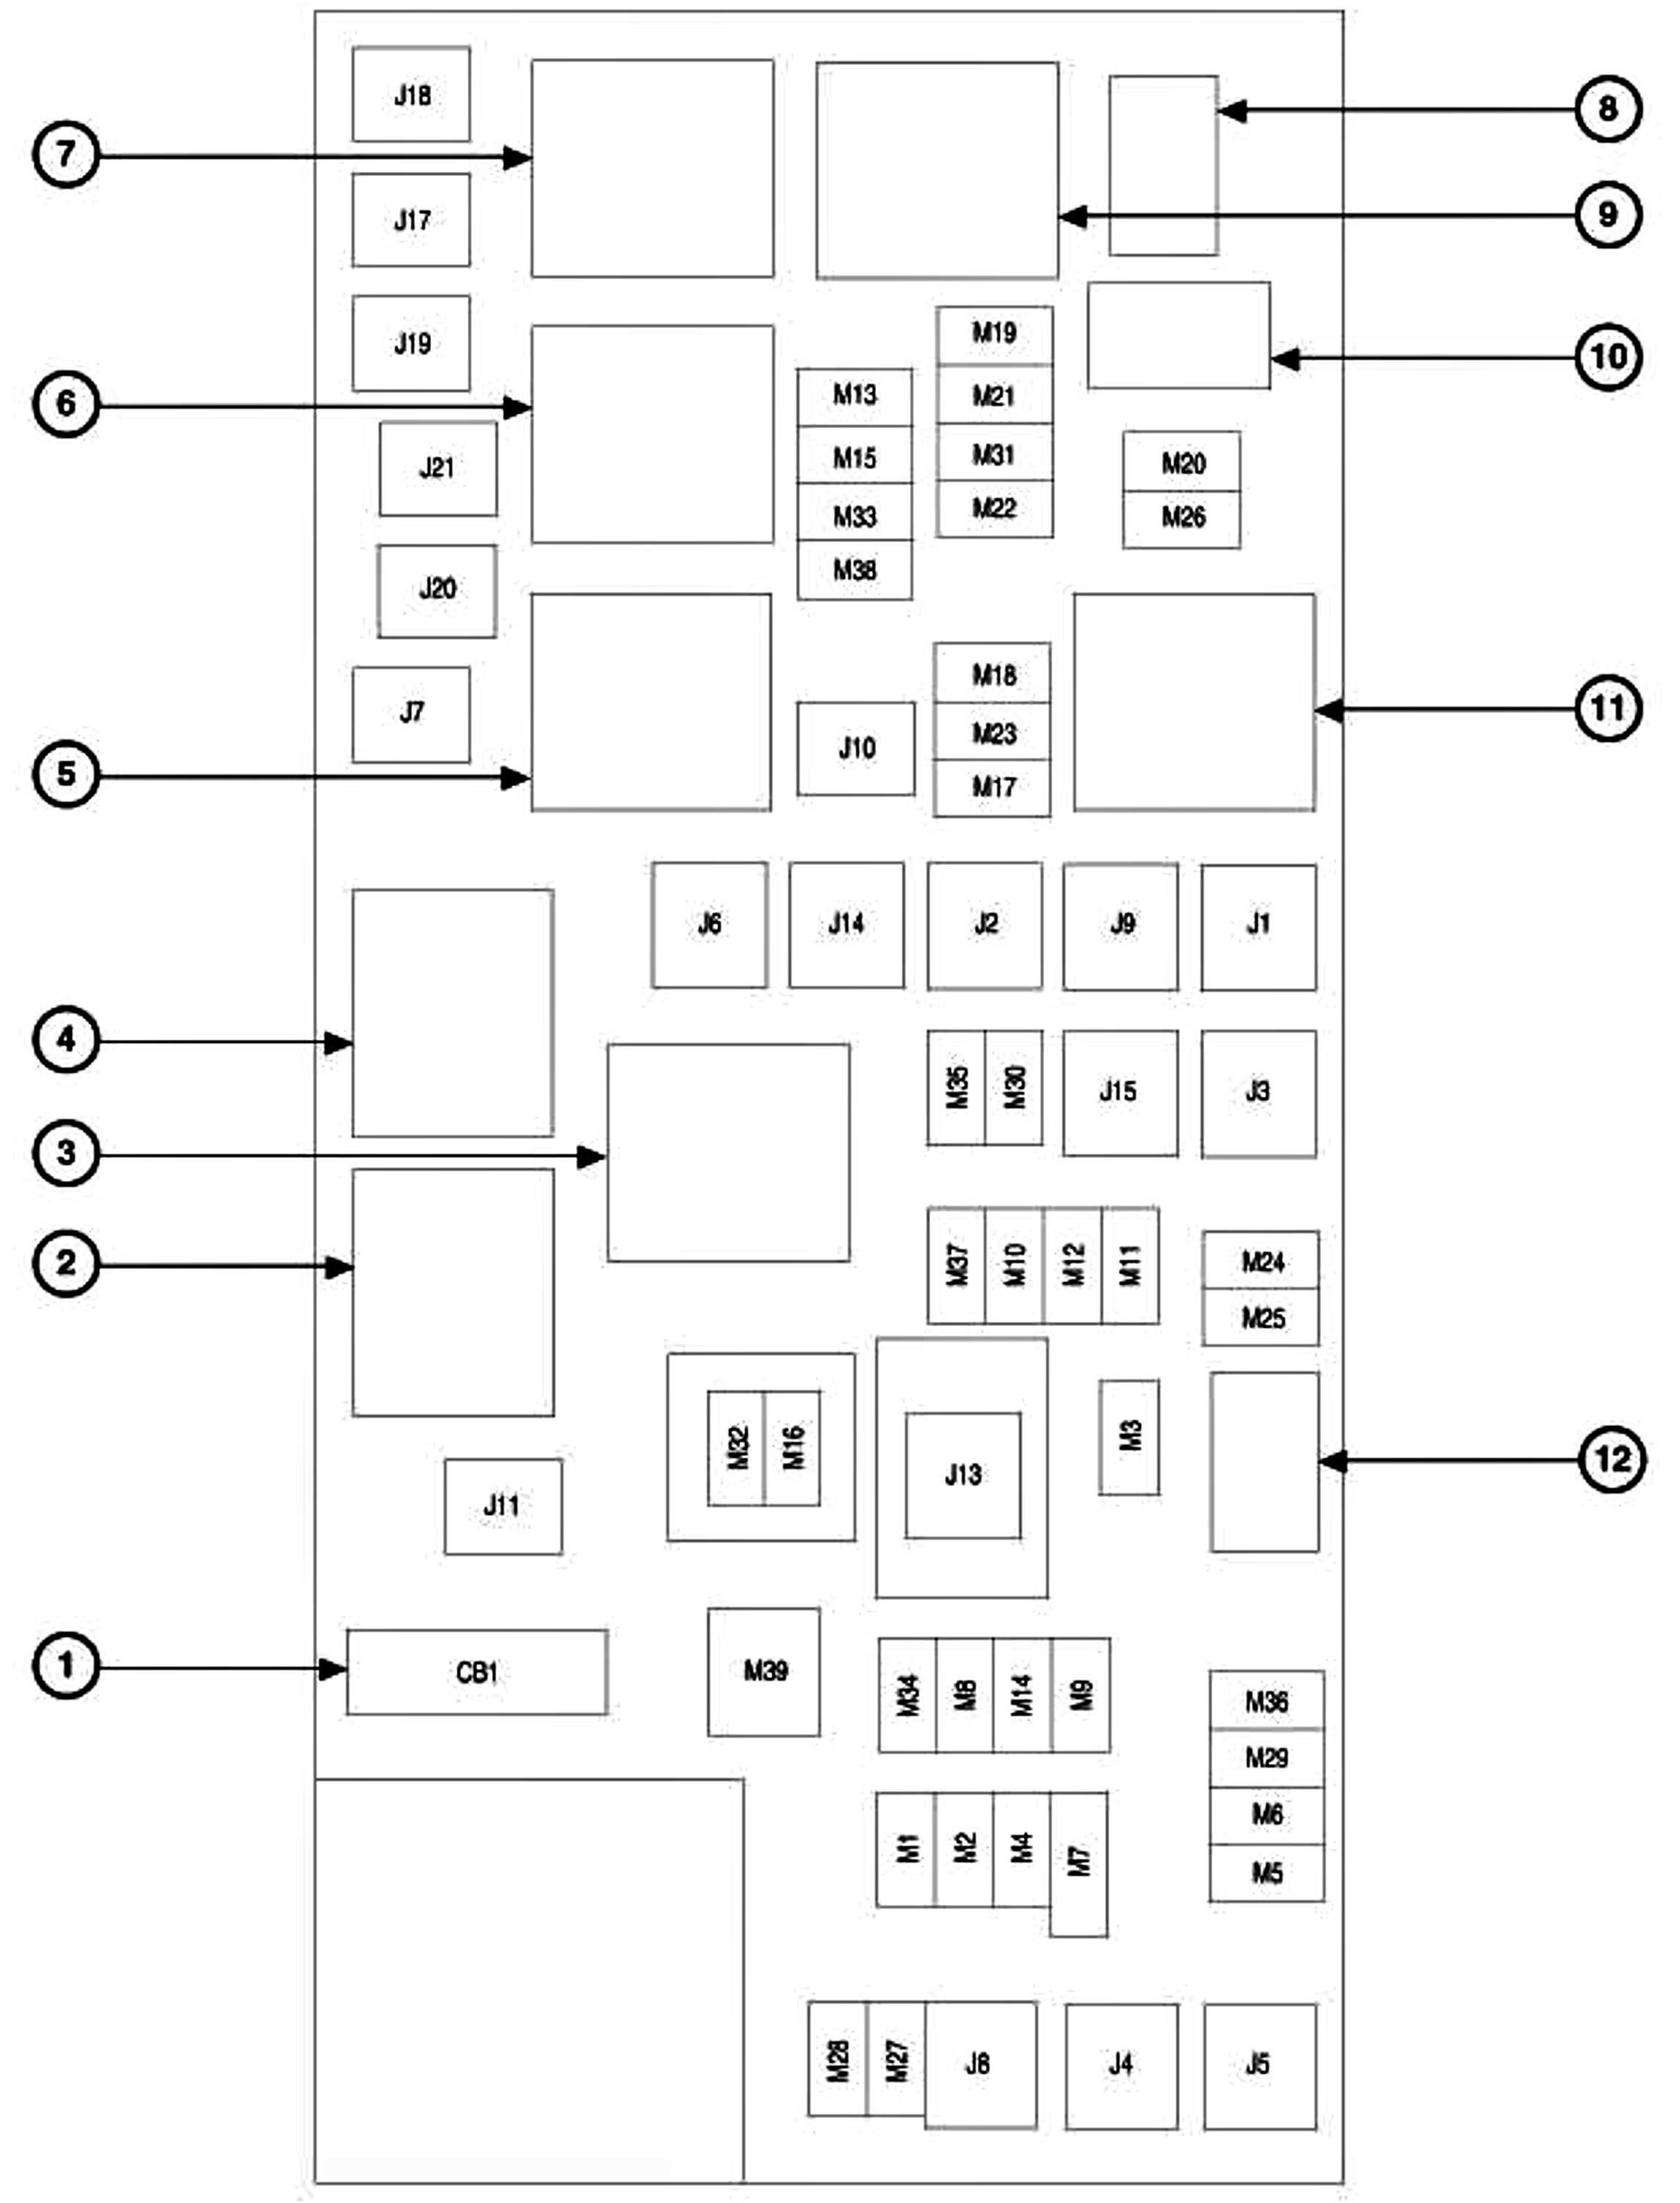 f65dad757704258fddc82721f010e9f2 2006 jeep commander fuse box diagram jpeg carimagescolay the longest journey fuse box at crackthecode.co